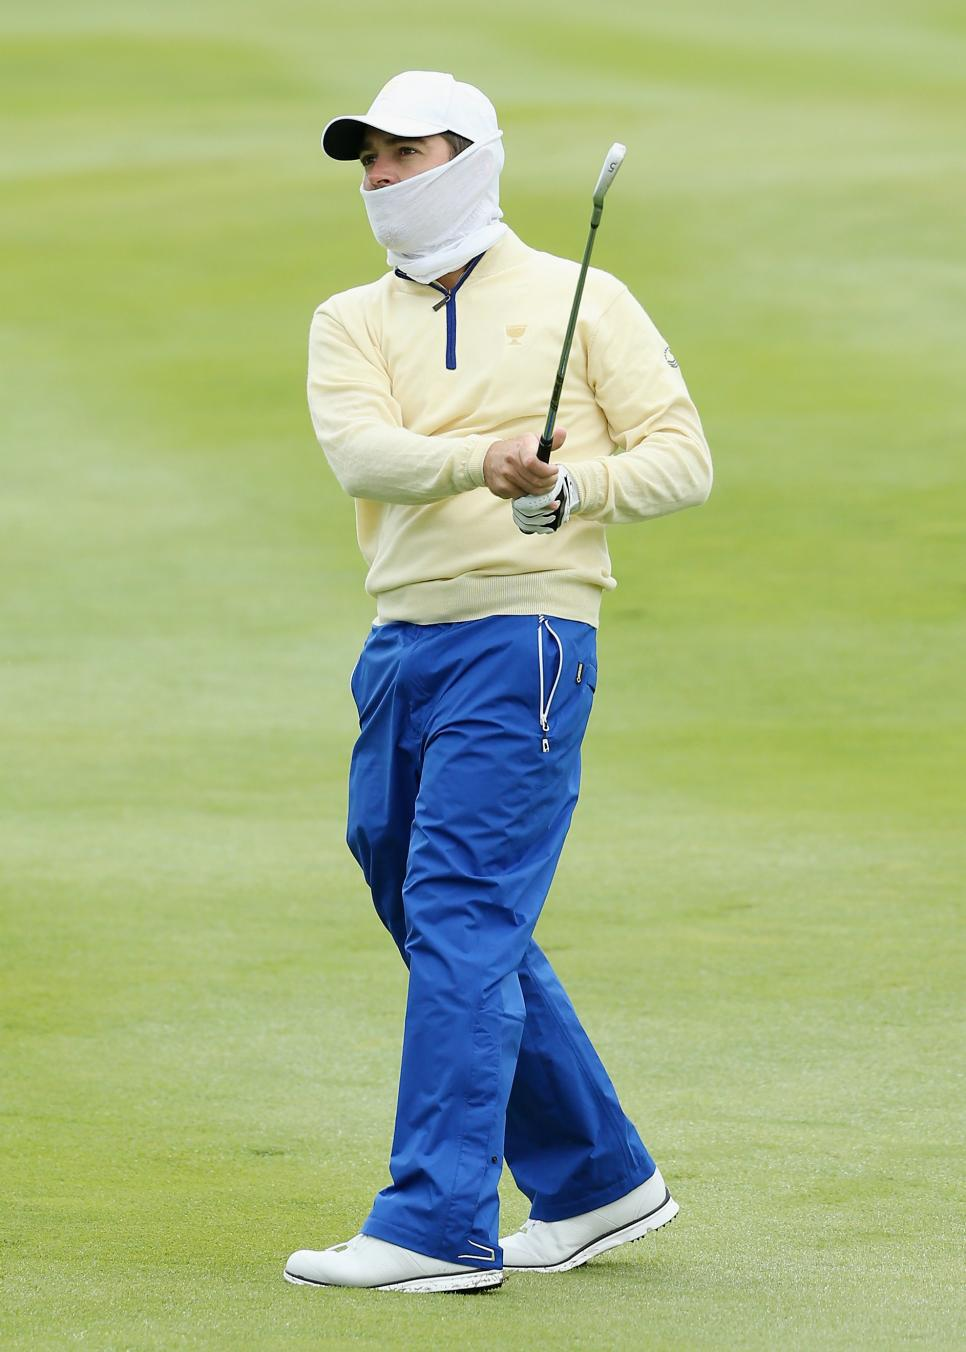 Oosthuizen-cover-up.jpg